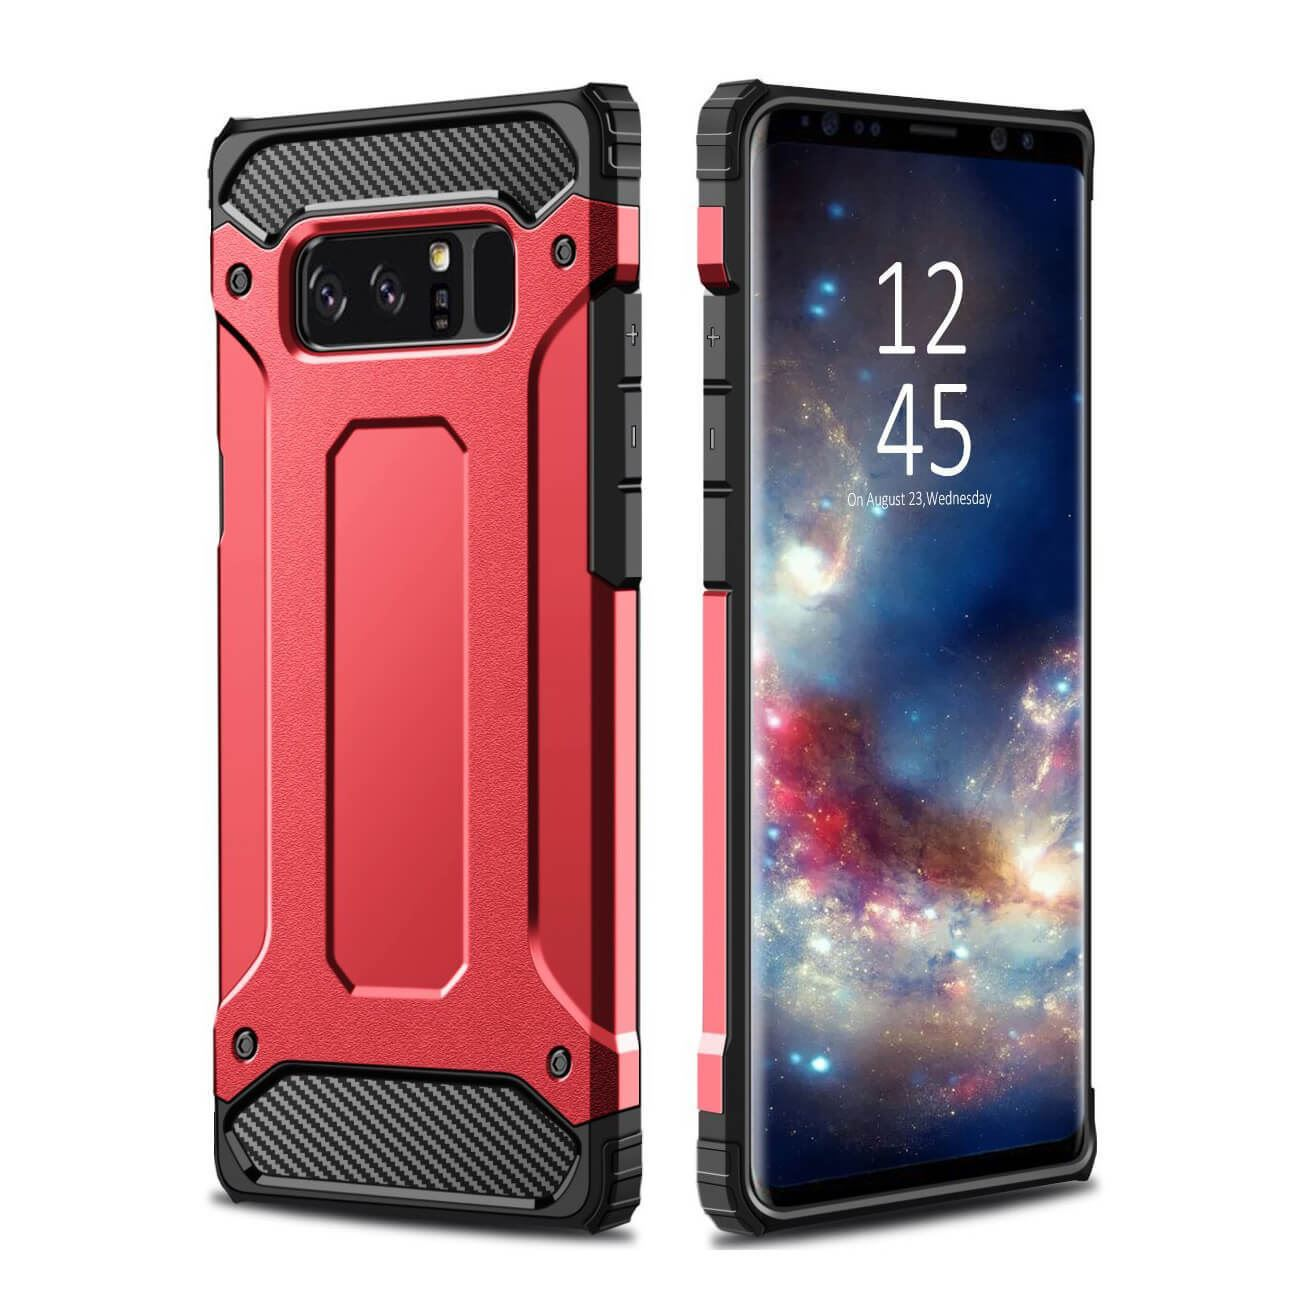 Hybrid-Armor-Case-For-Samsung-Galaxy-S7-S8-S9-Shockproof-Rugged-Bumper-Cover thumbnail 52